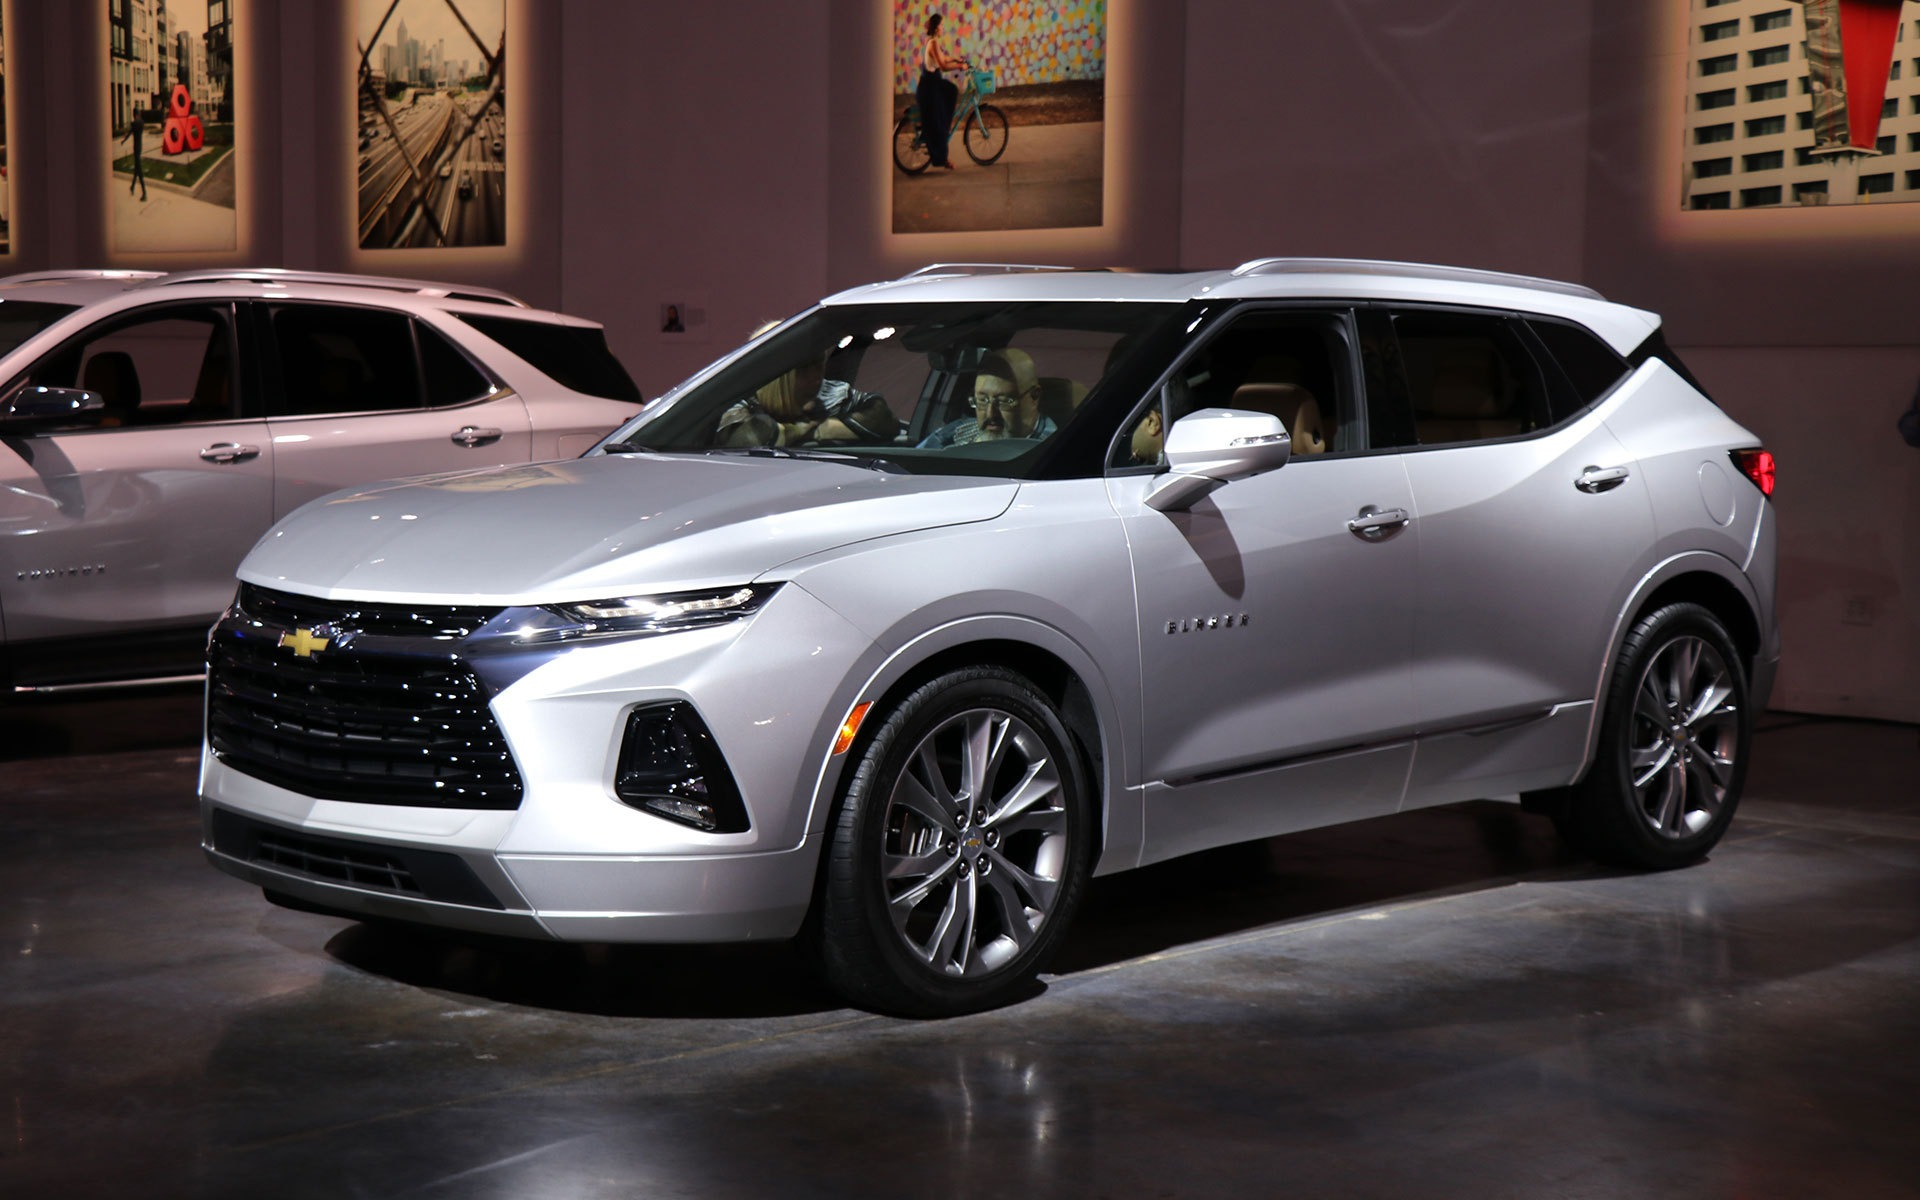 2019 Chevrolet Blazer The Comeback 4 28